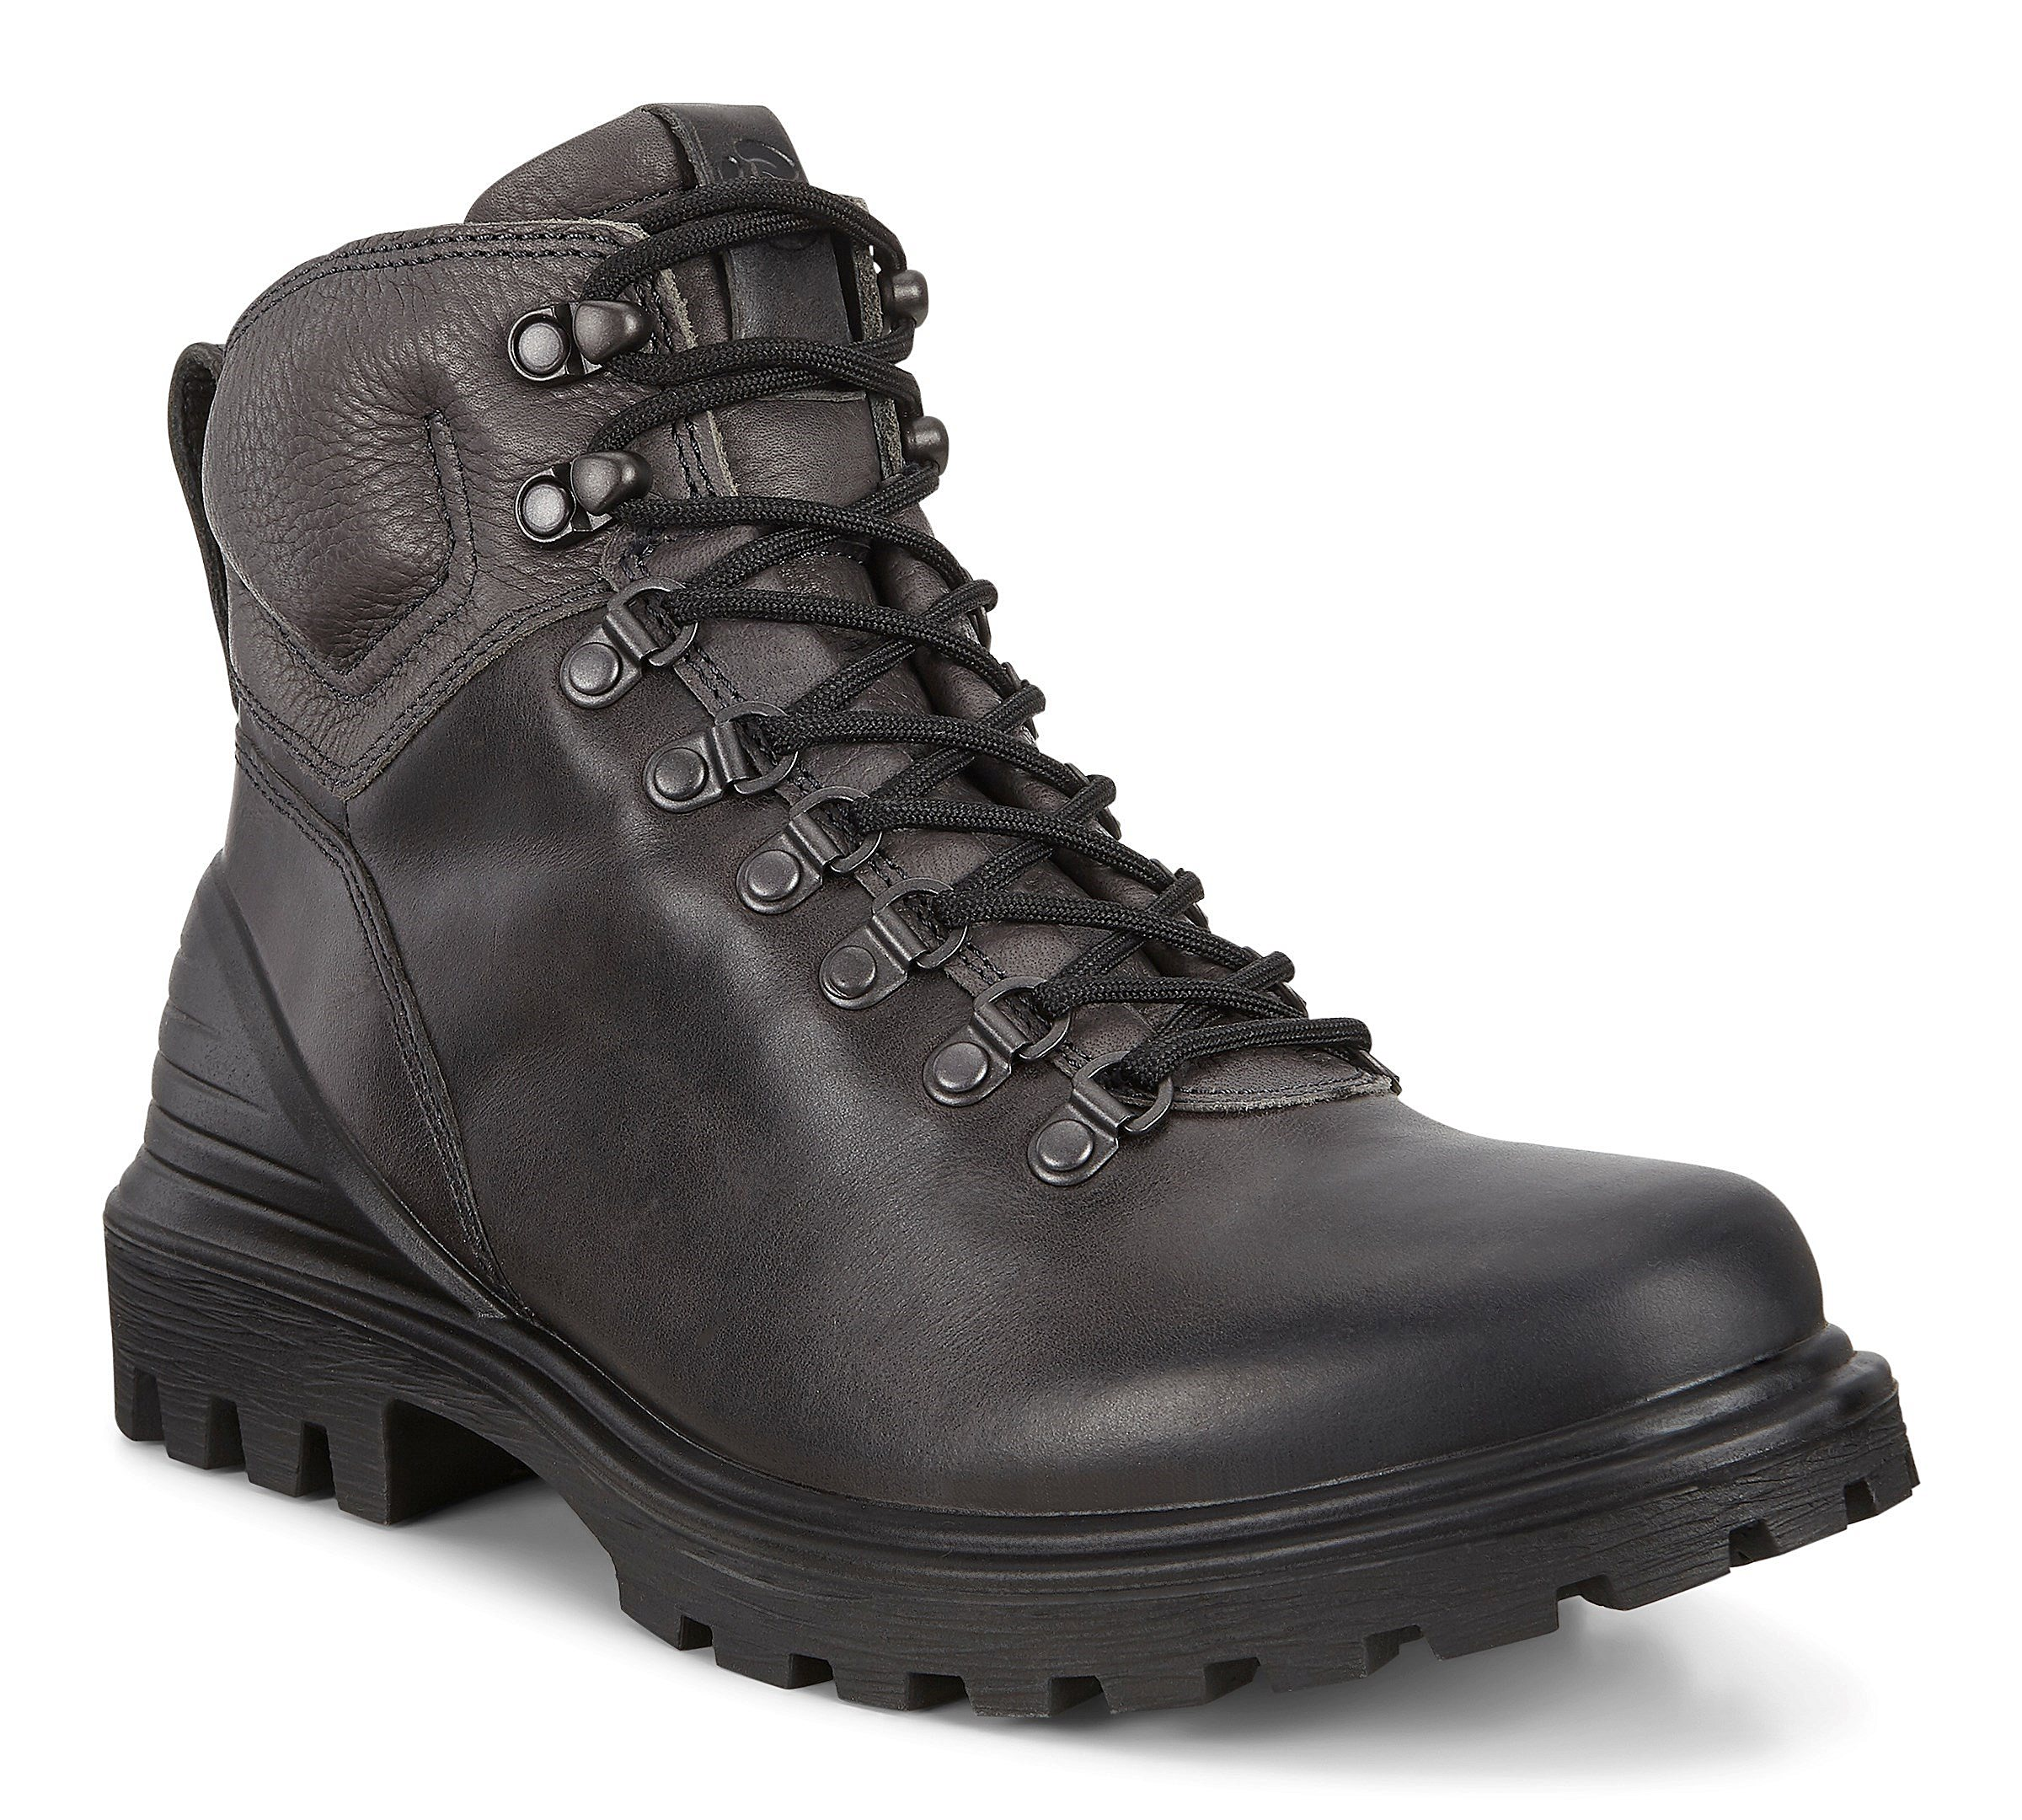 Men's Boots | Buy from the Official